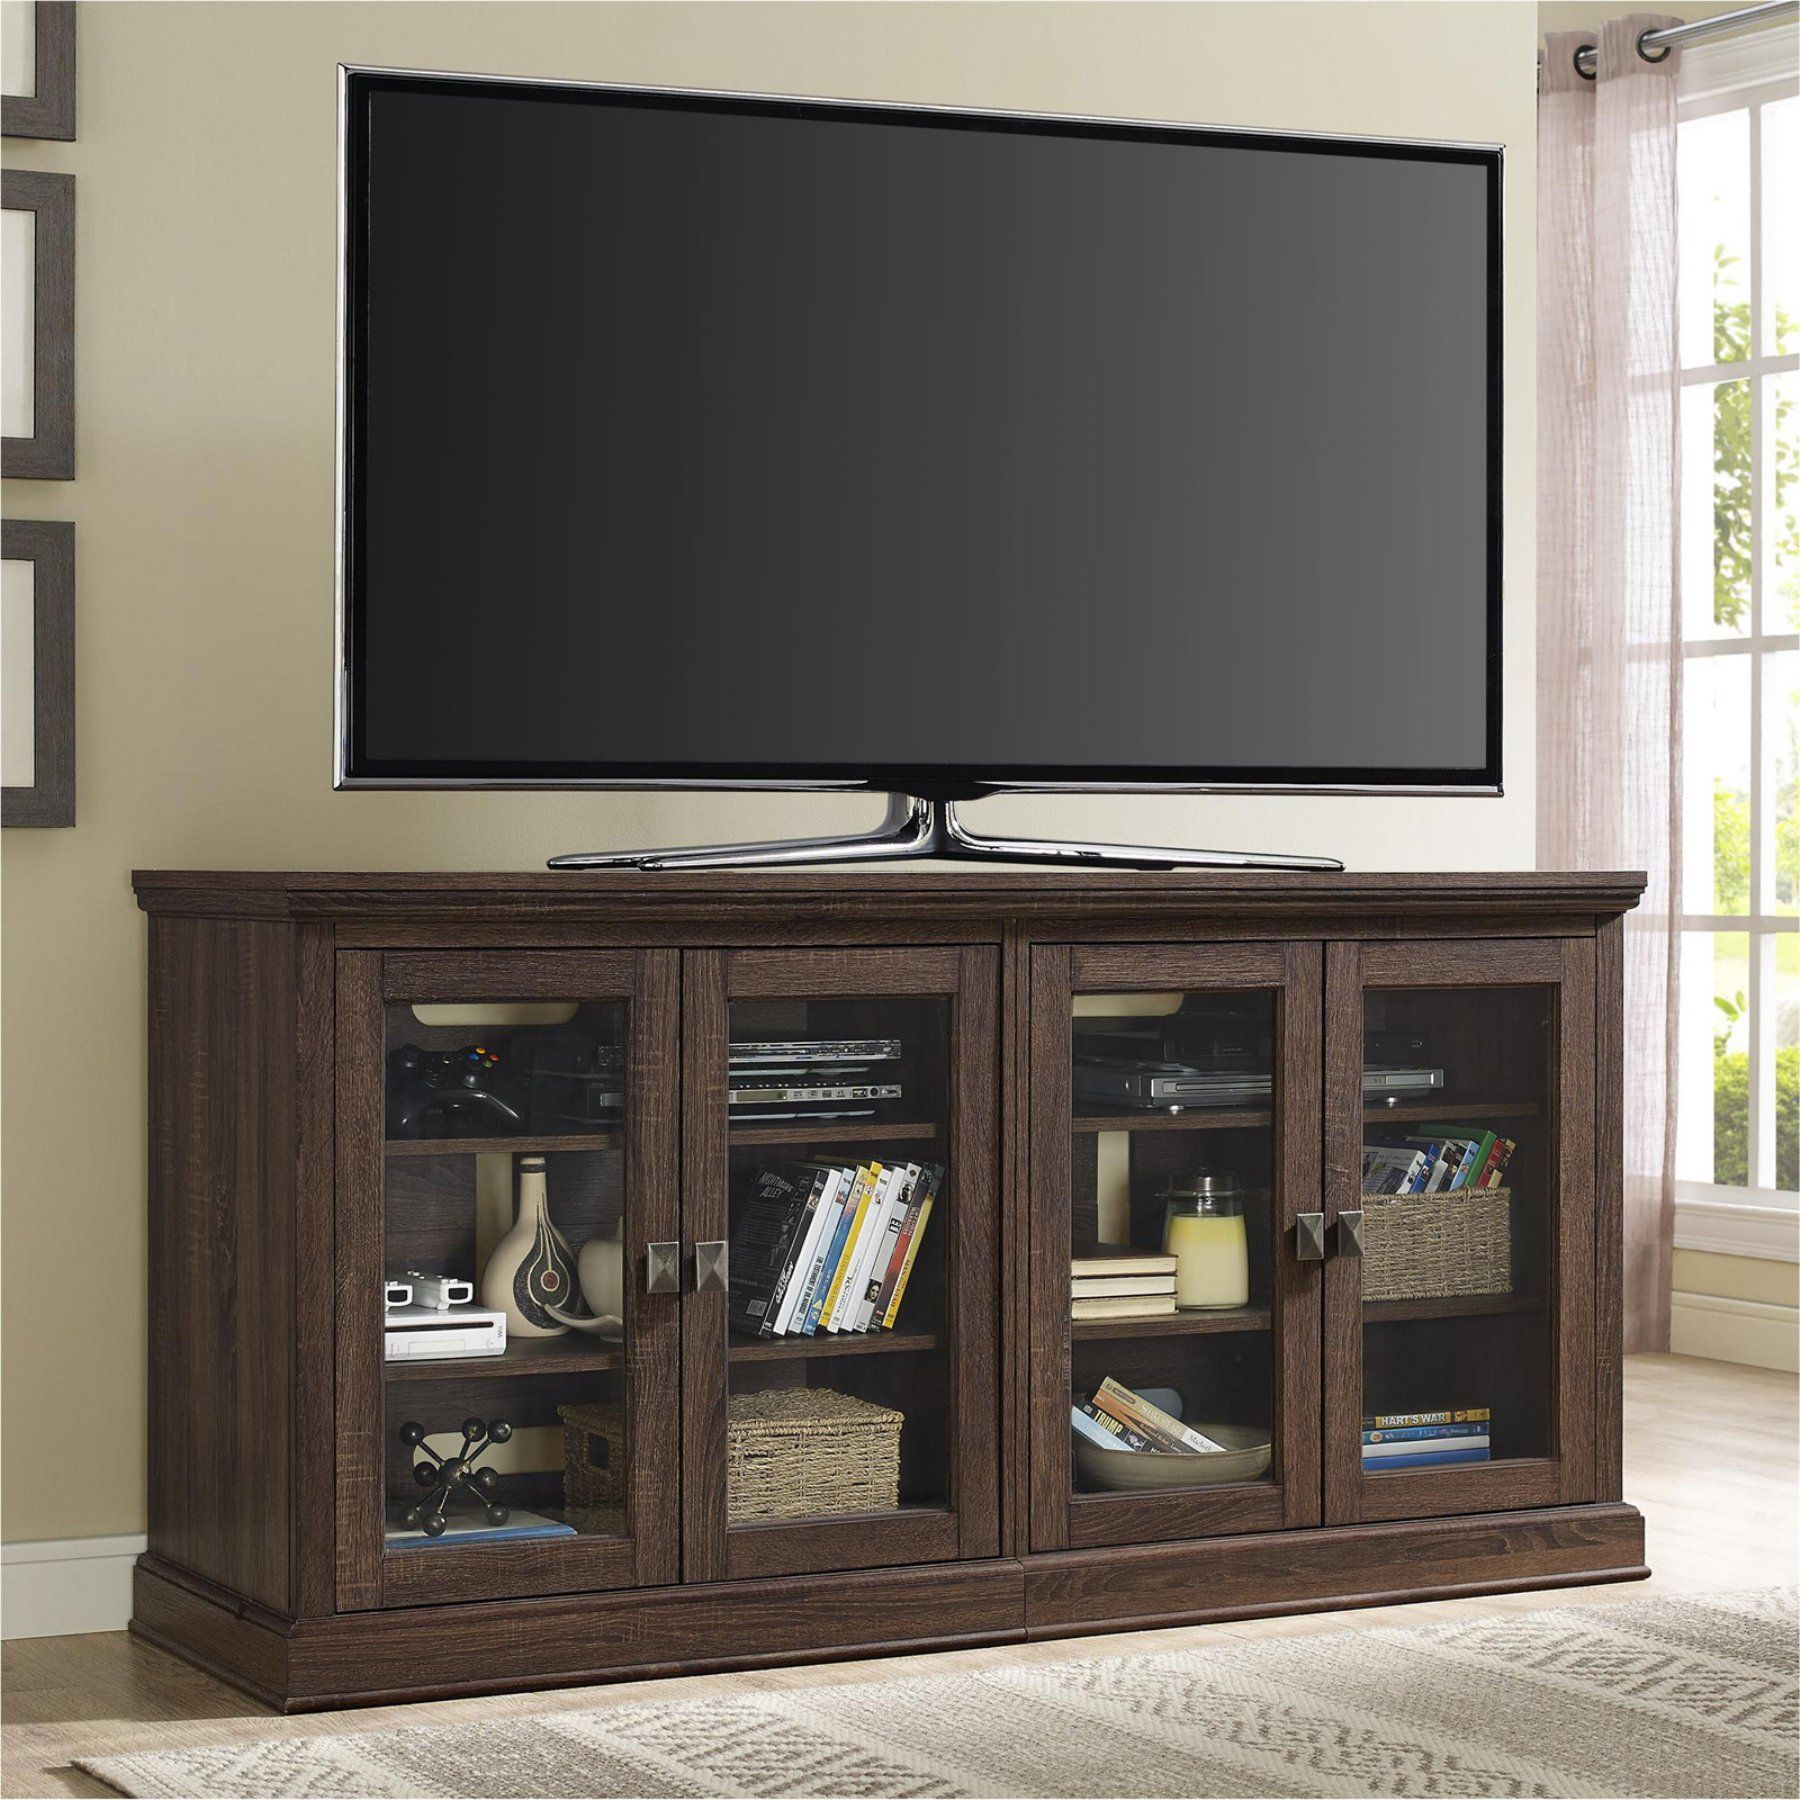 Ameriwood Home Bennett Tv Console With Glass Doors 1784196pcom Tv Stand With Glass Doors Altra Furniture Entertainment Center